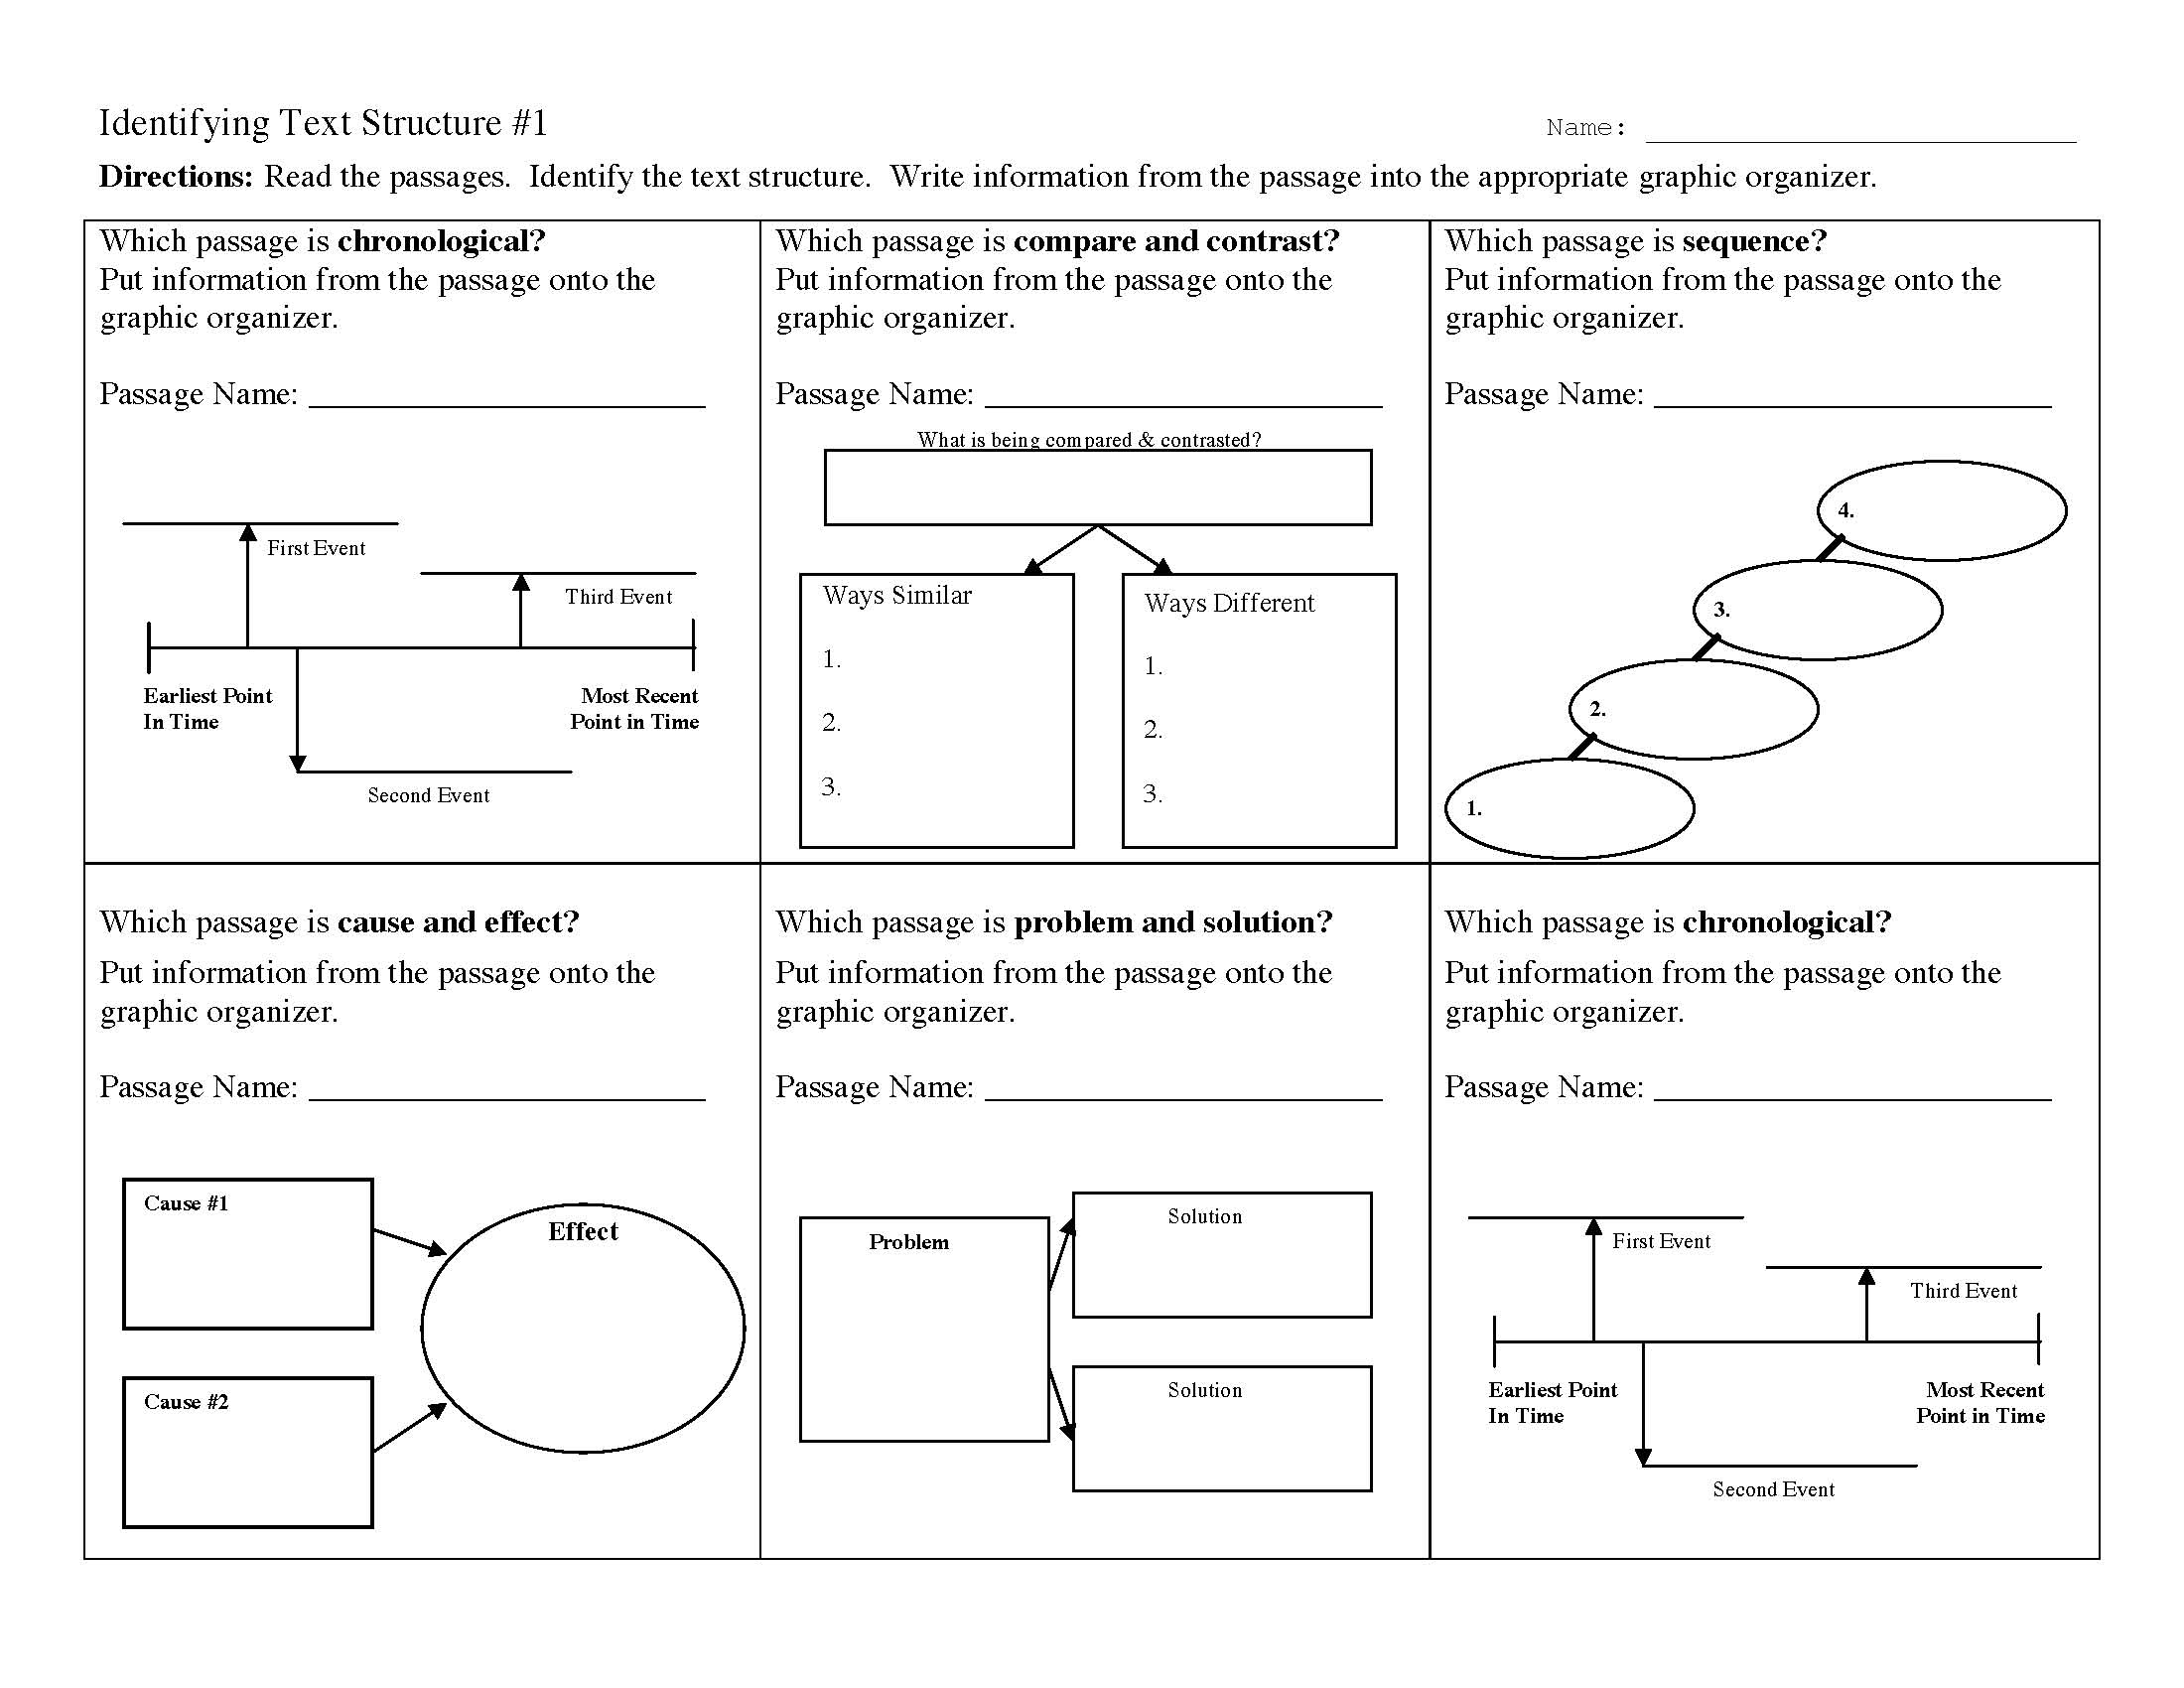 Text Structure Worksheet 1 Preview Free compare and contrast worksheets for 3rd grade, 4th grade and 5th grade. text structure worksheet 1 preview